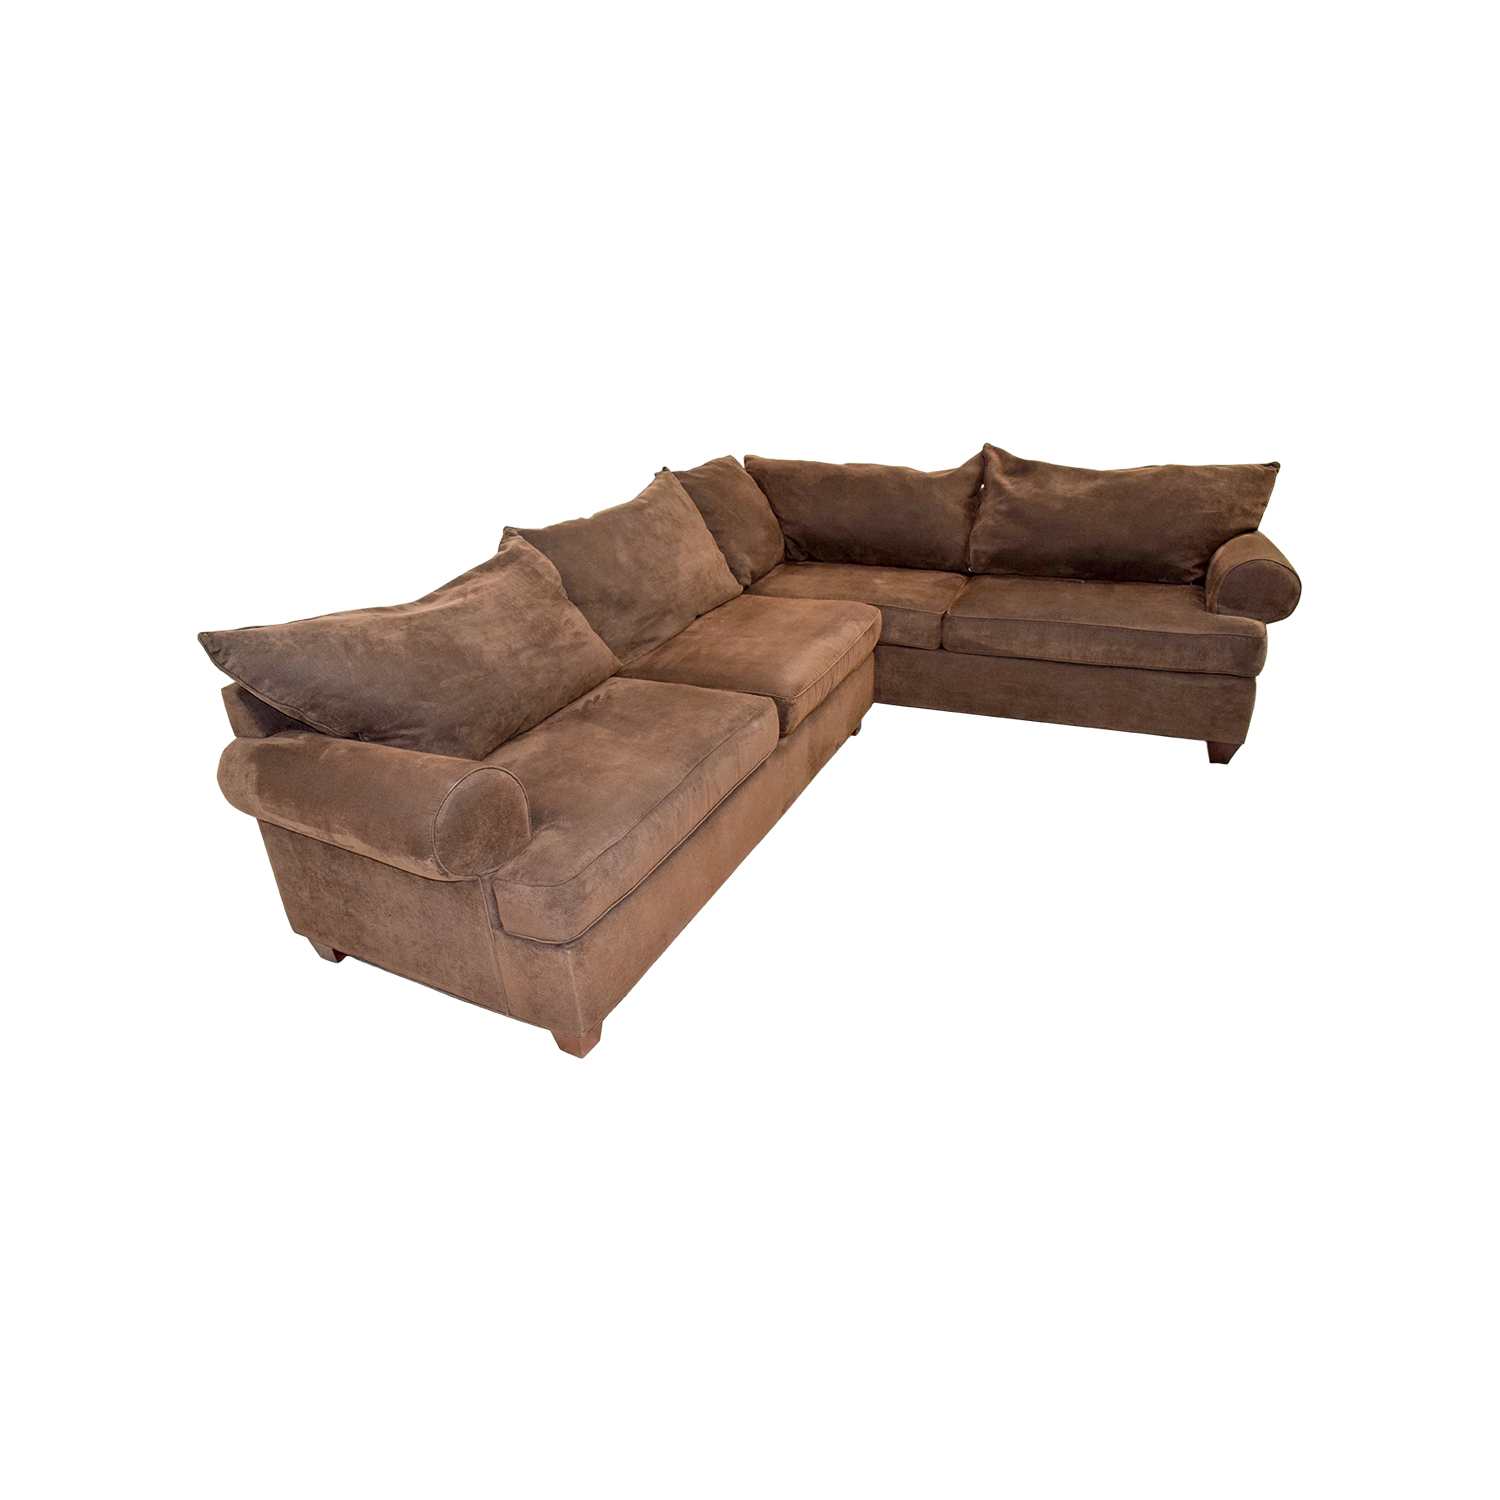 second hand brown corduroy l shaped sectional couch